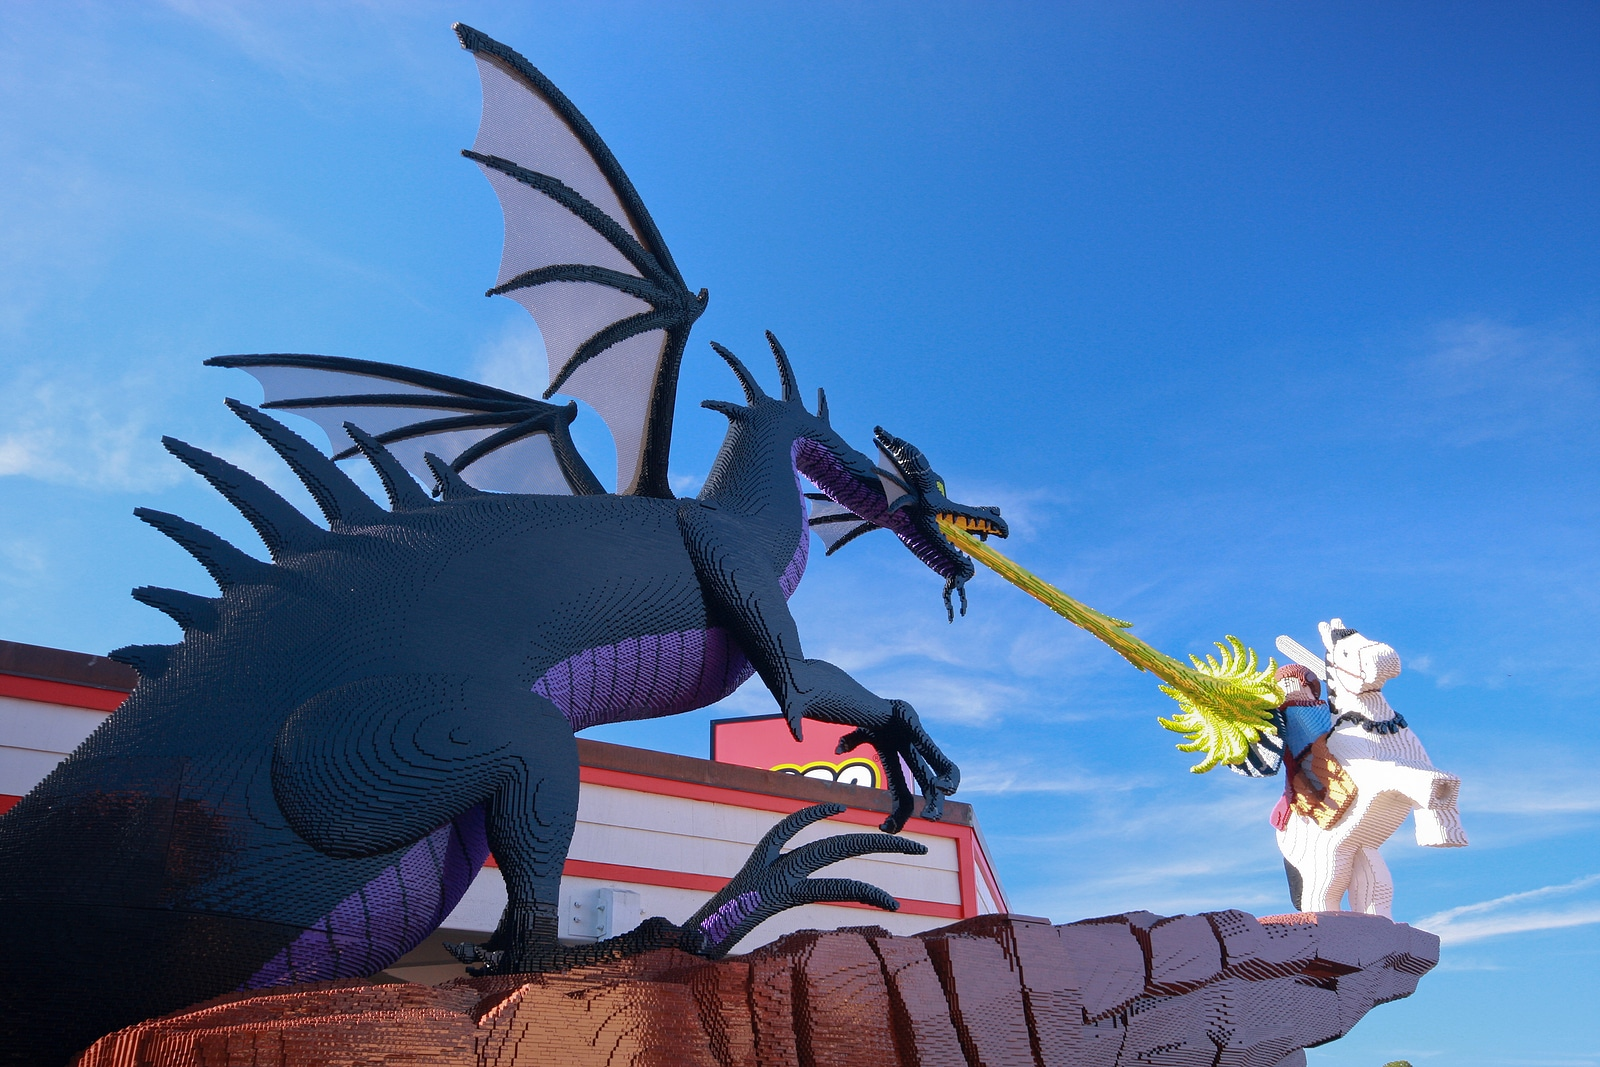 Dragon at Lego zone of Downtown Disney by Forte Concierge Network